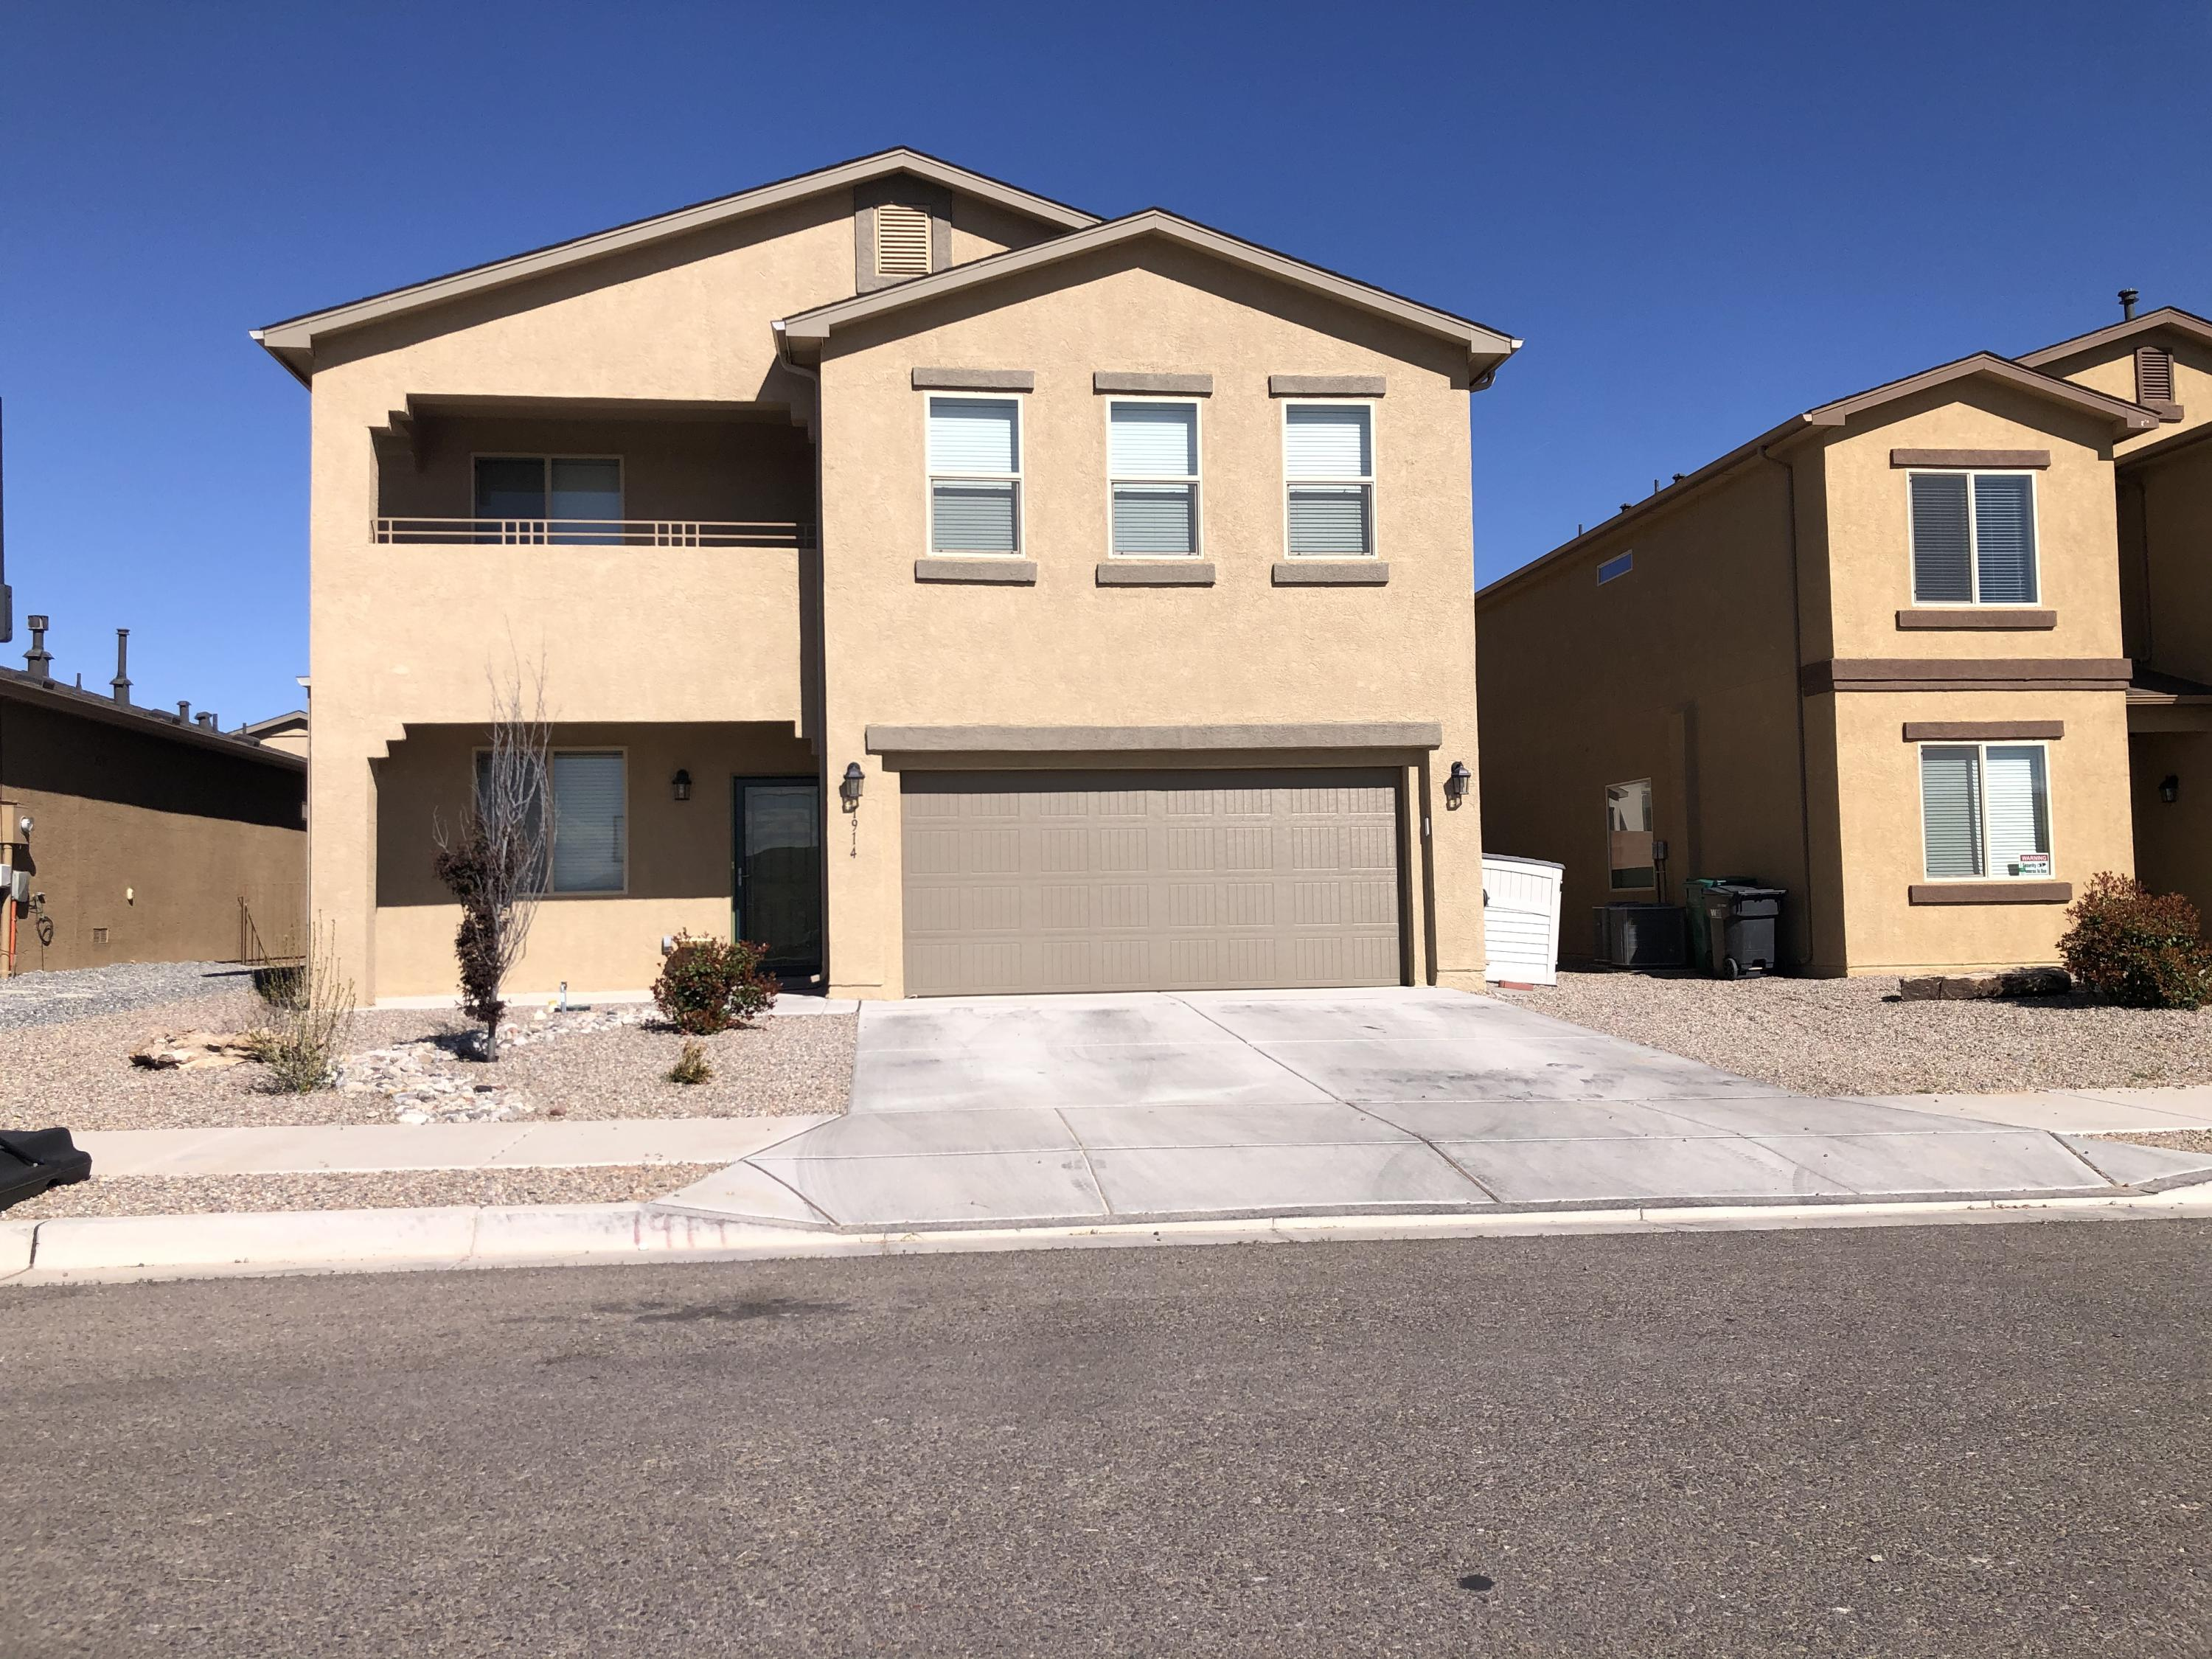 1914 GOLDENFLARE Loop NE, Rio Rancho, NM 87144 - Rio Rancho, NM real estate listing